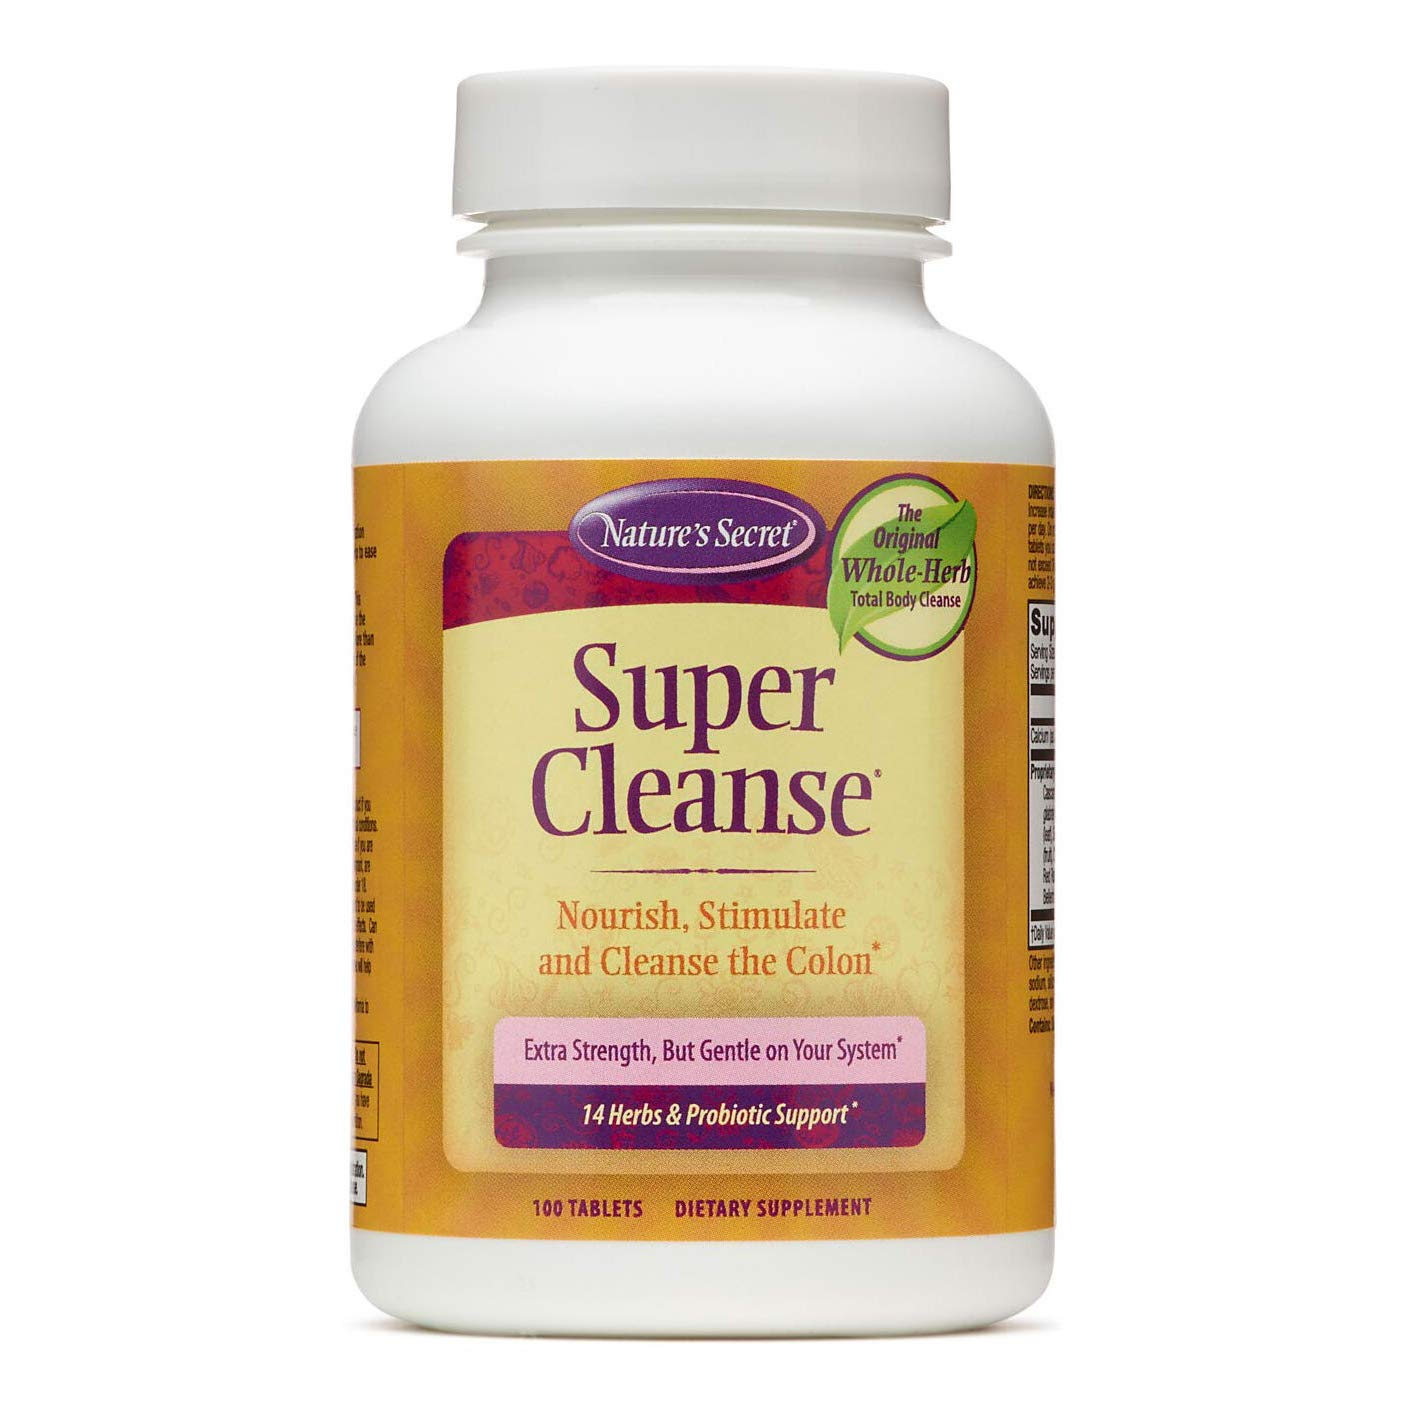 Nature's Secret Super Cleanse Extra Strength Toxin Detox & Gentle Elimination Total Body Cleanse, Digestive & Colon Health Support - Stimulating Blend of 14 Herbs with Probiotics - 100 Tablets